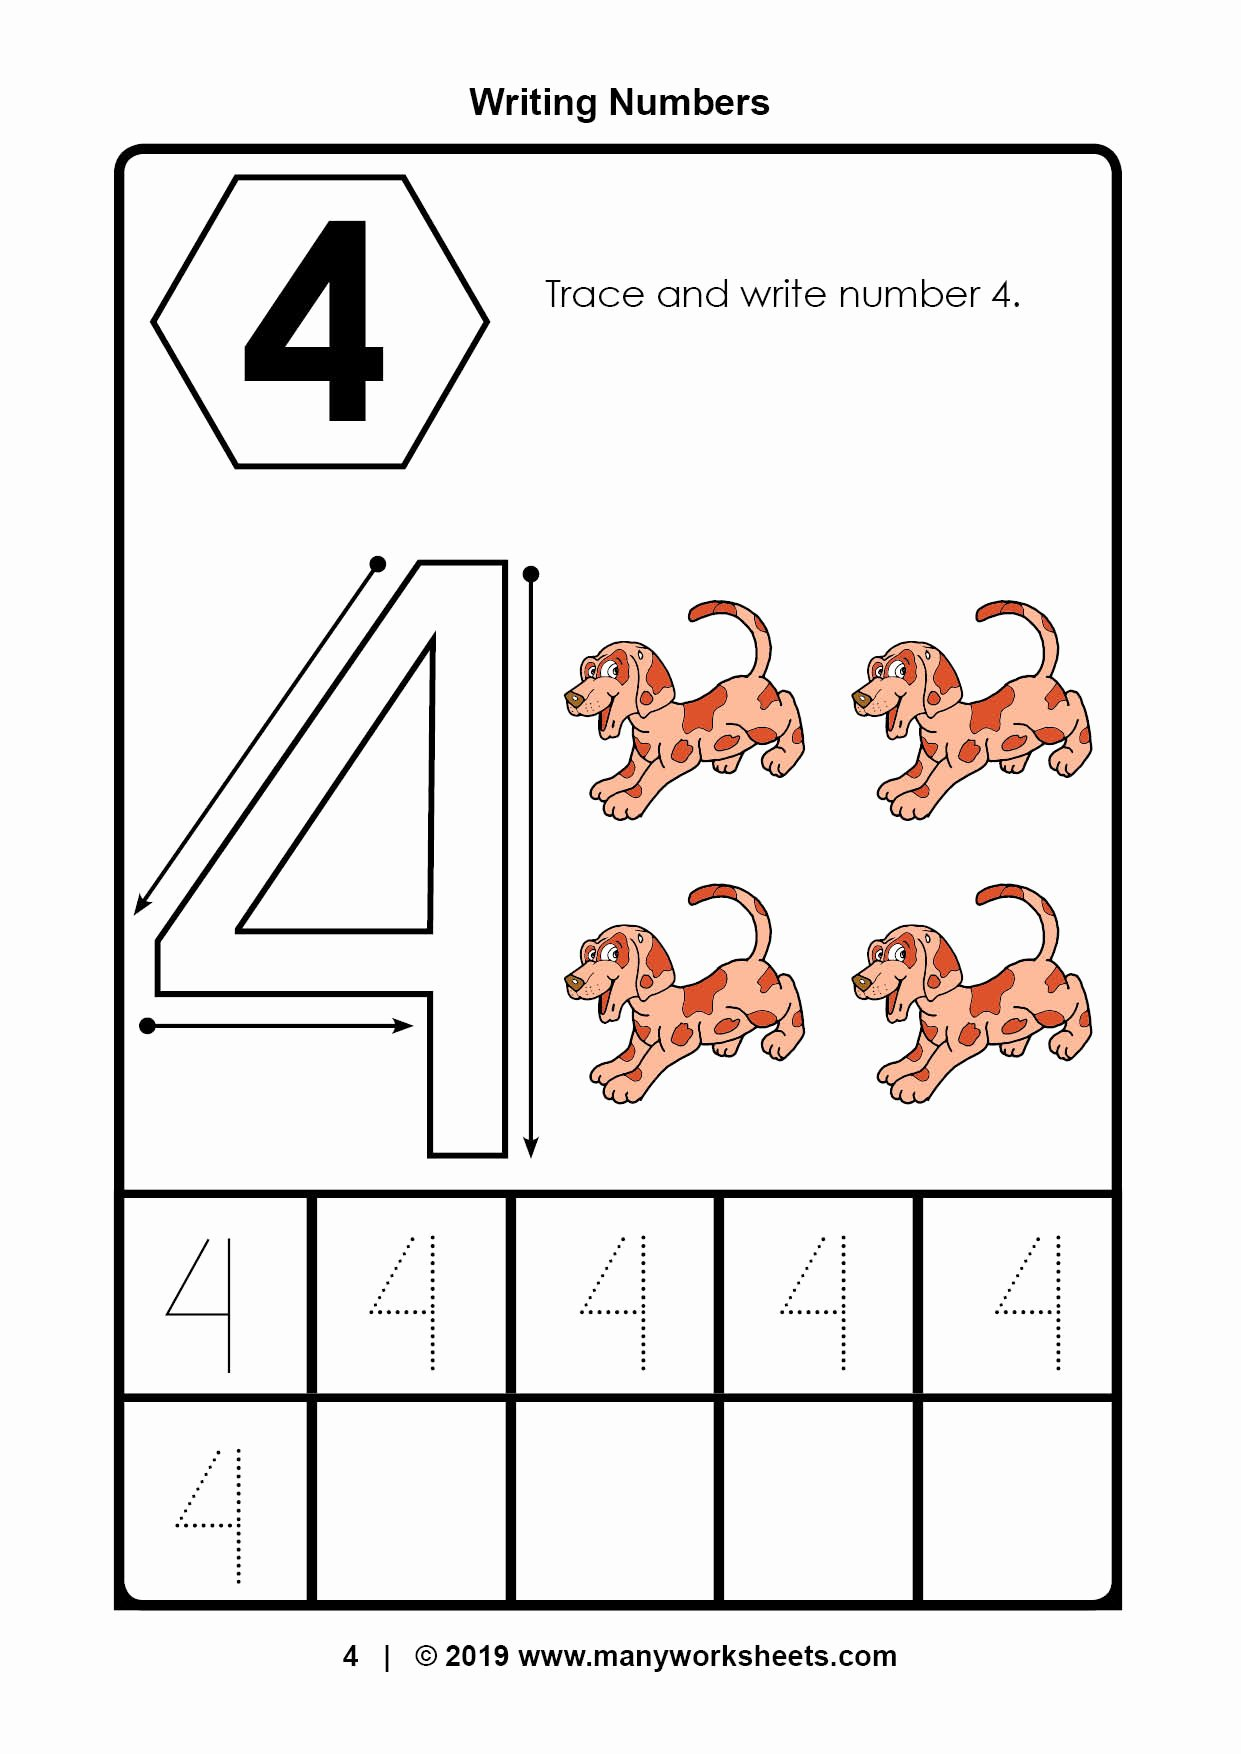 Number 4 Worksheets for Preschoolers Awesome Tracing Number 4 Worksheets for Kindergarten